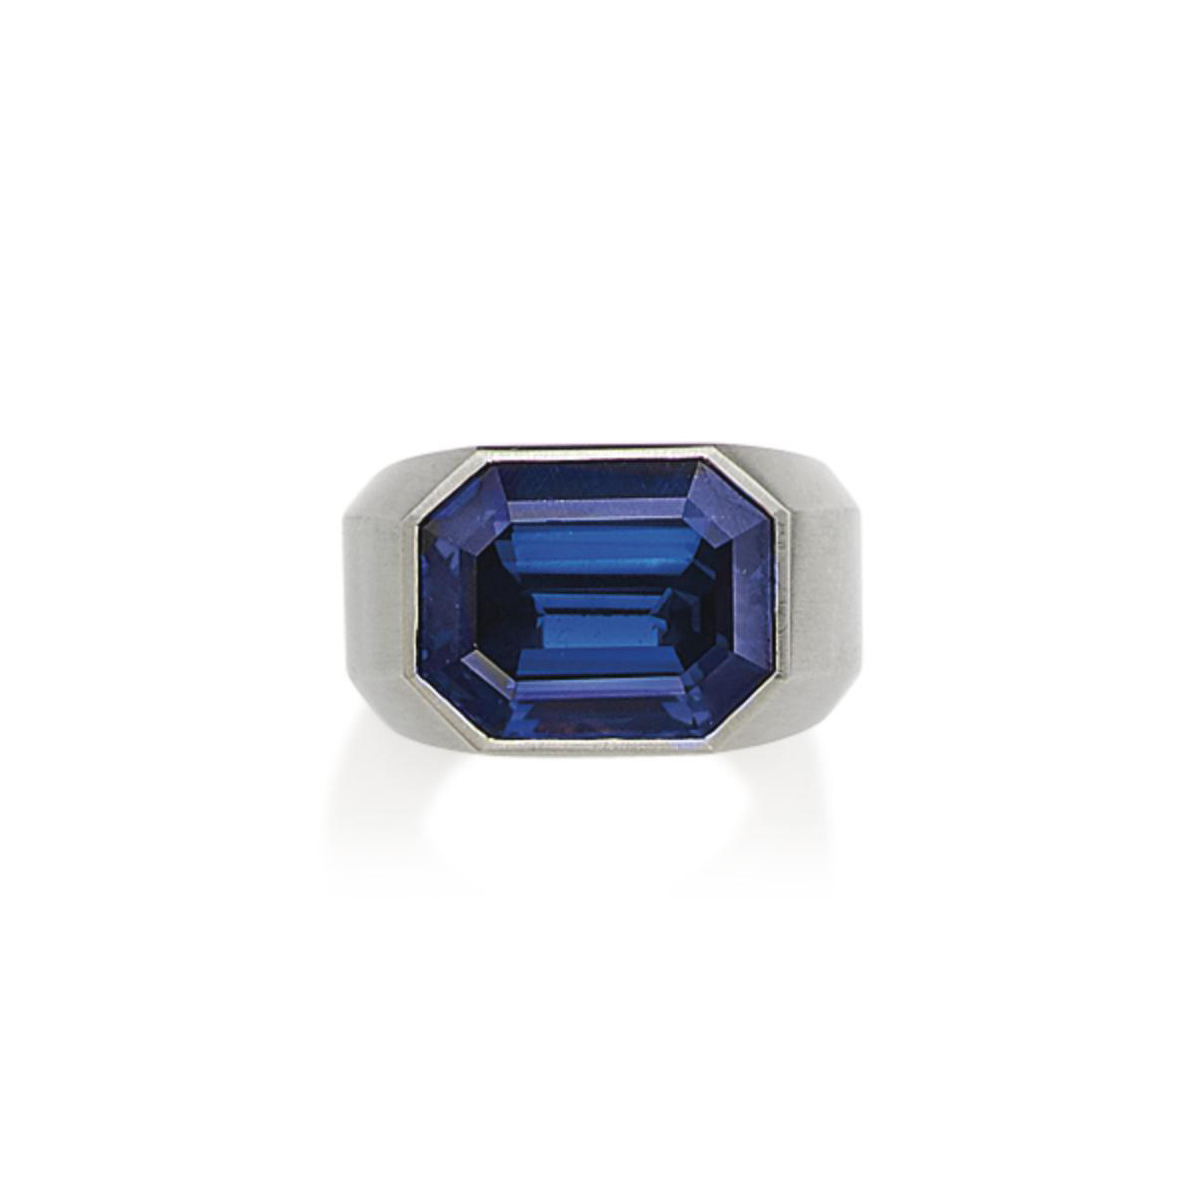 A SAPPHIRE RING, BY HEMMERLÉ